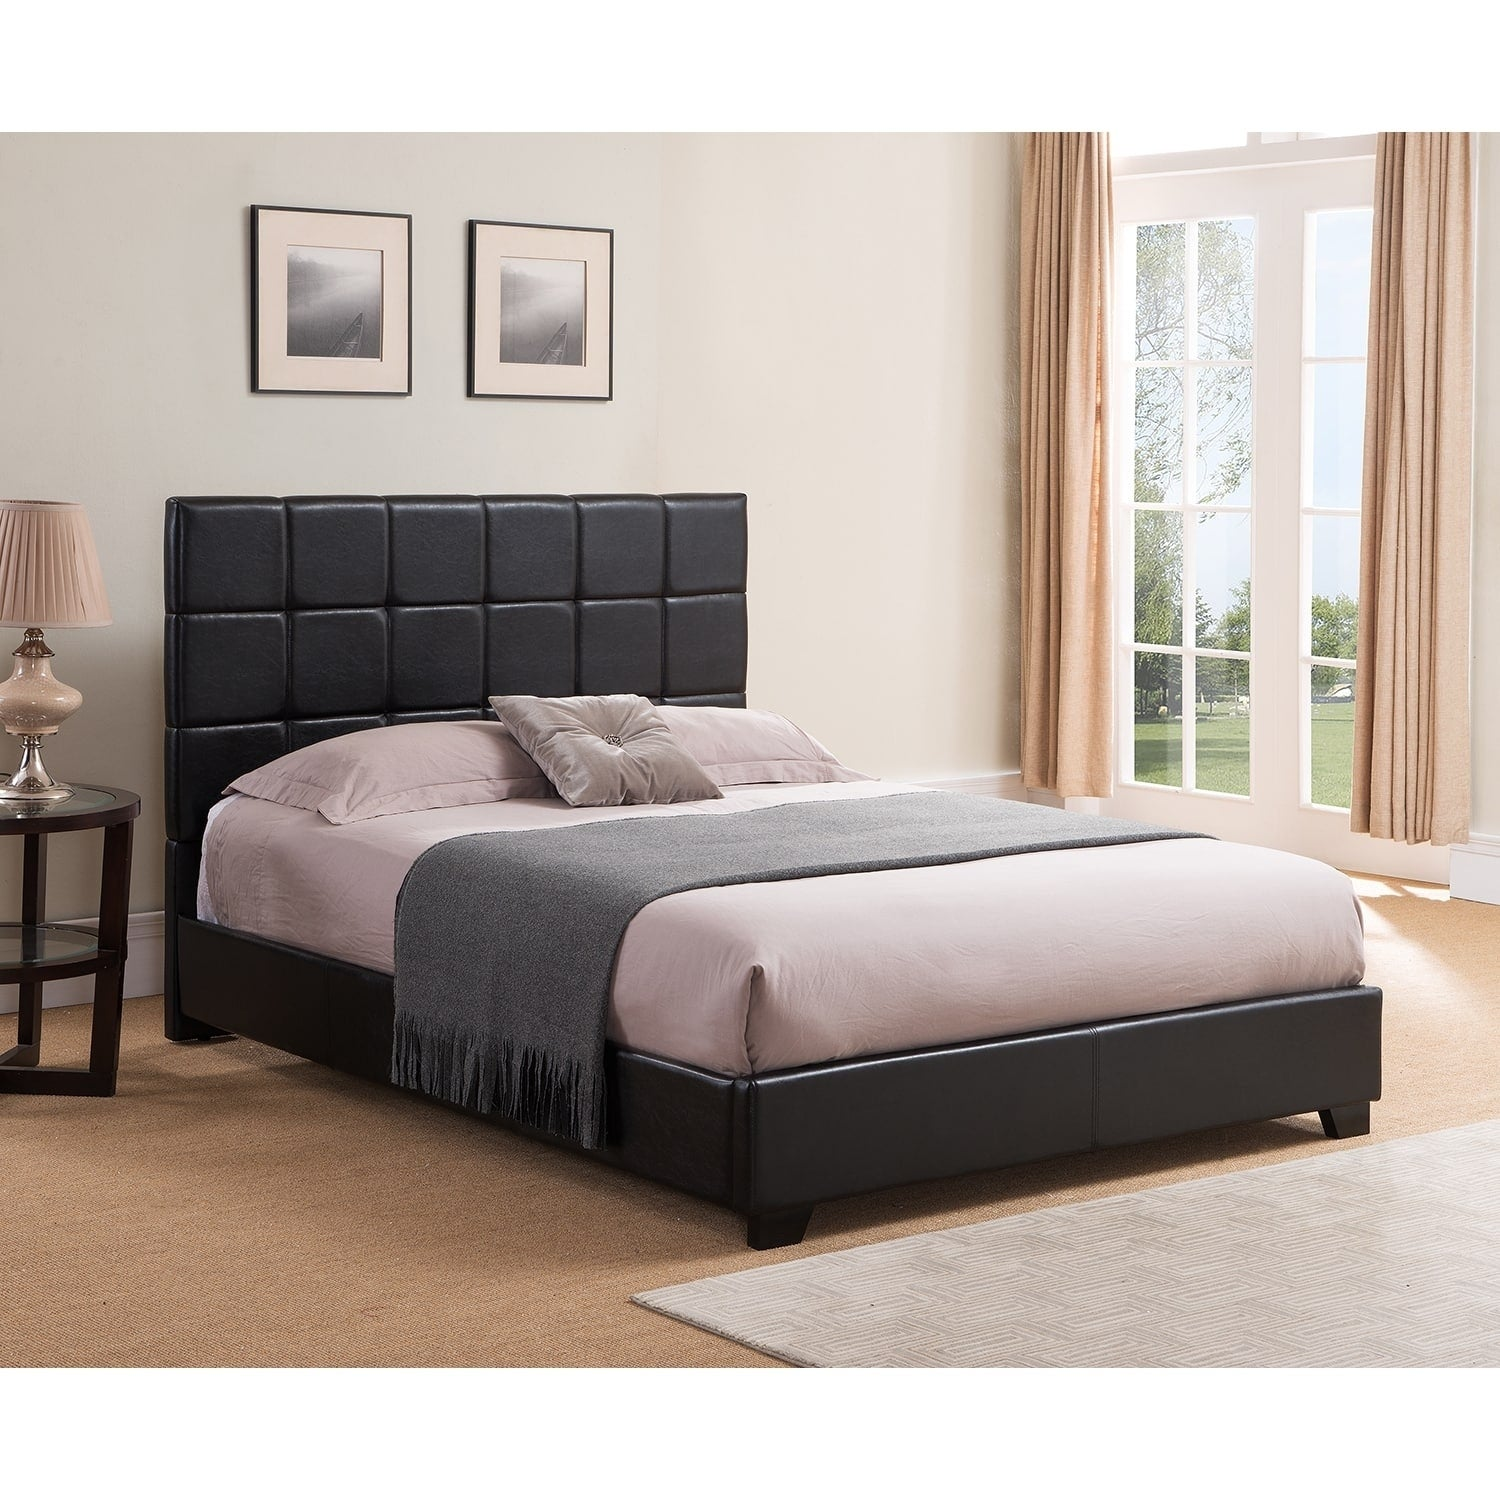 Shop Kenville, Queen Size, Black Leather Platform Bed - Free ...